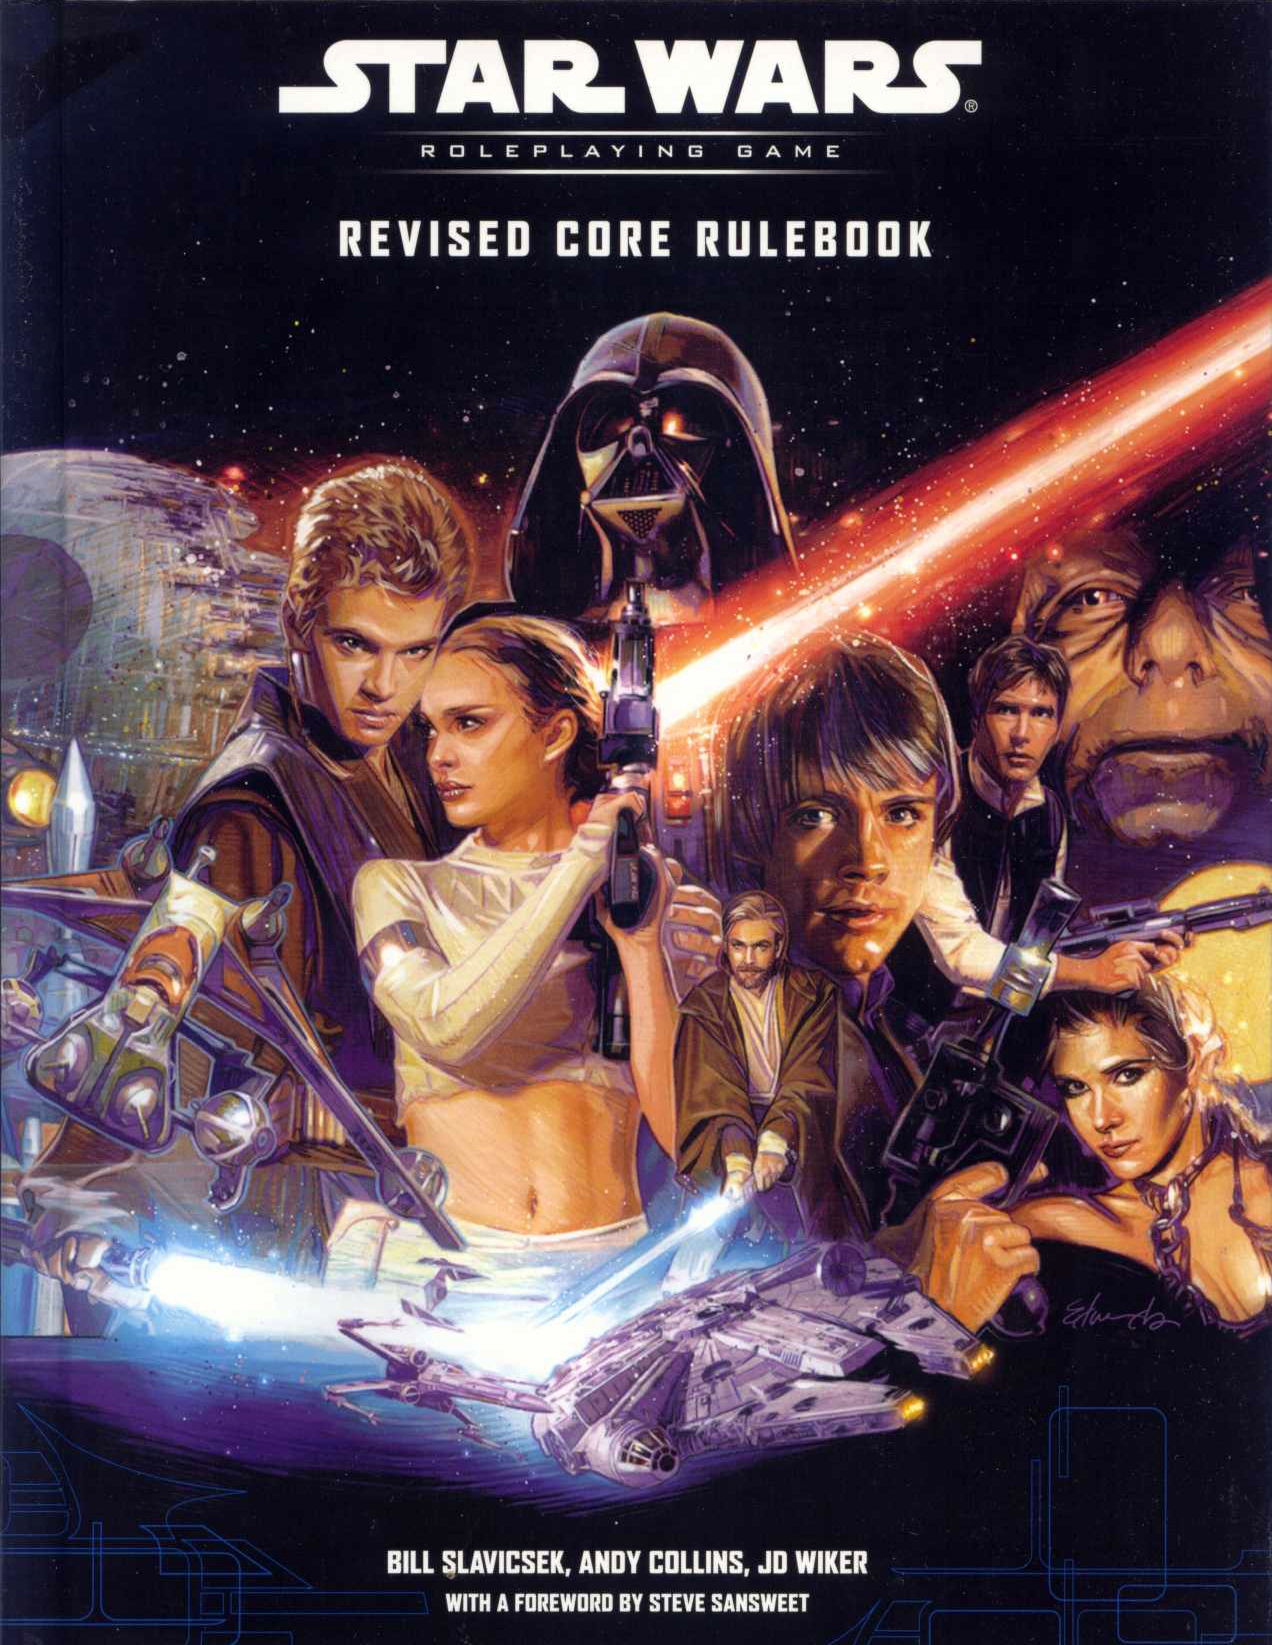 97d8761152 Star Wars Roleplaying Game Revised Core Rulebook